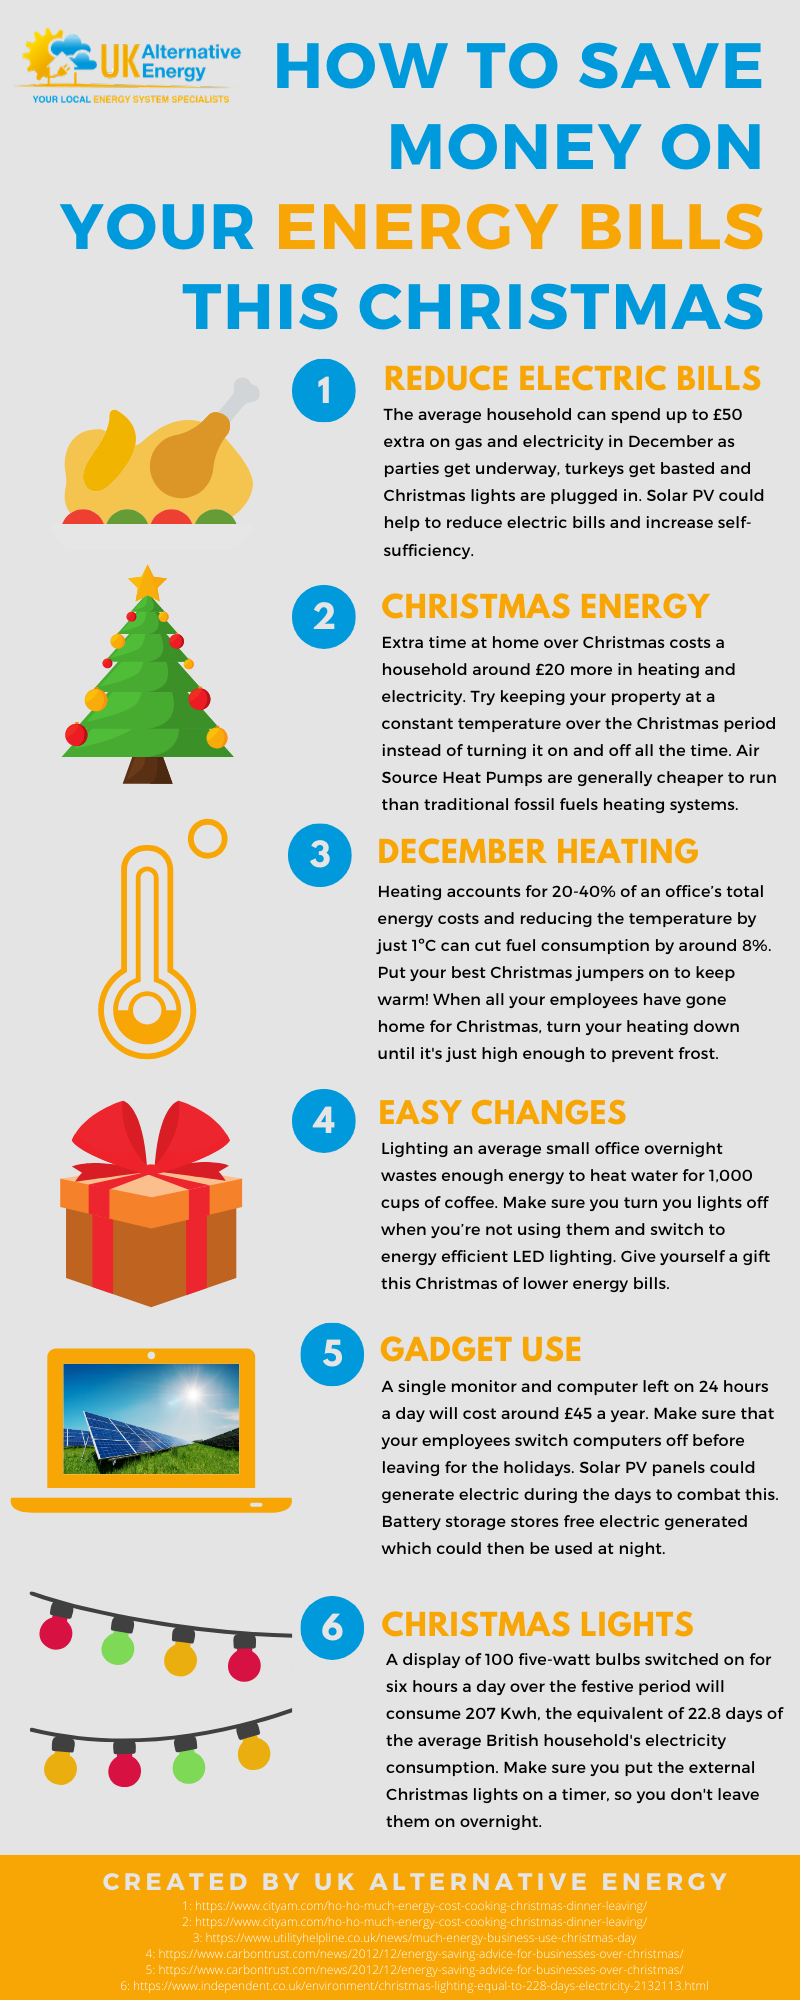 how-to-save-money-on-your-energy-bills-this-christmas-1